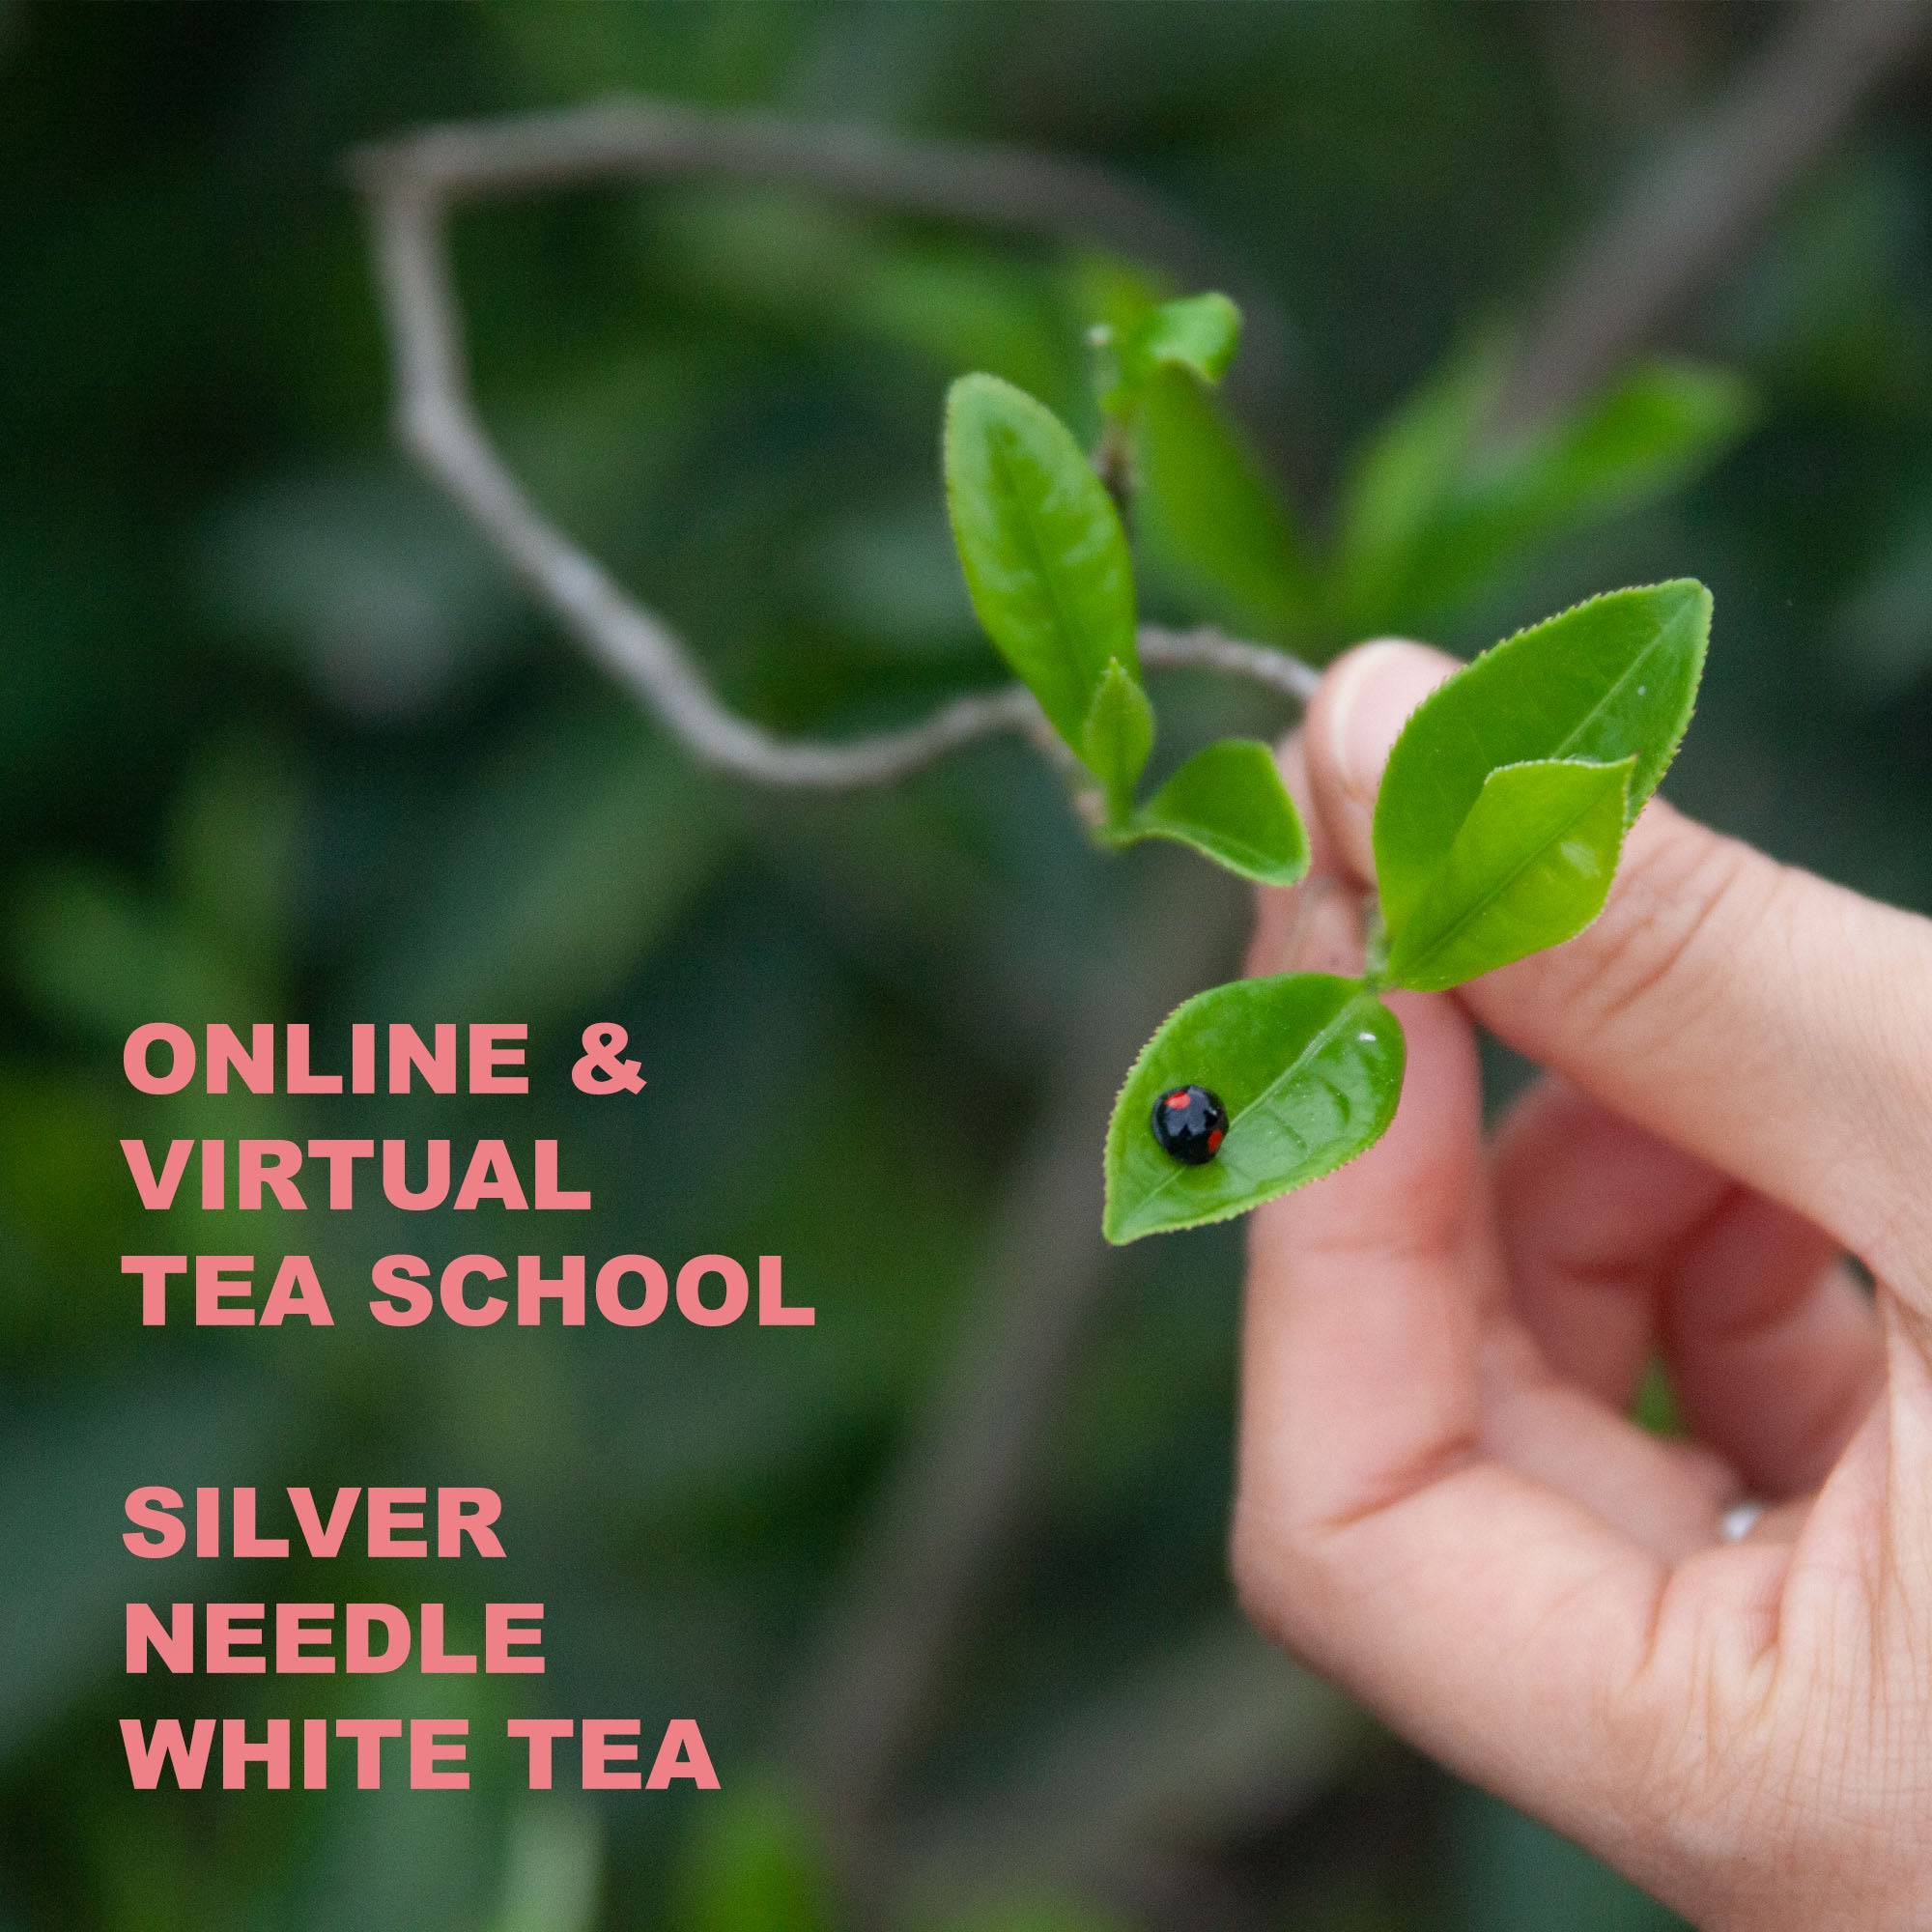 VIRTUAL TEA SCHOOL - SILVER NEEDLE WHITE TEA